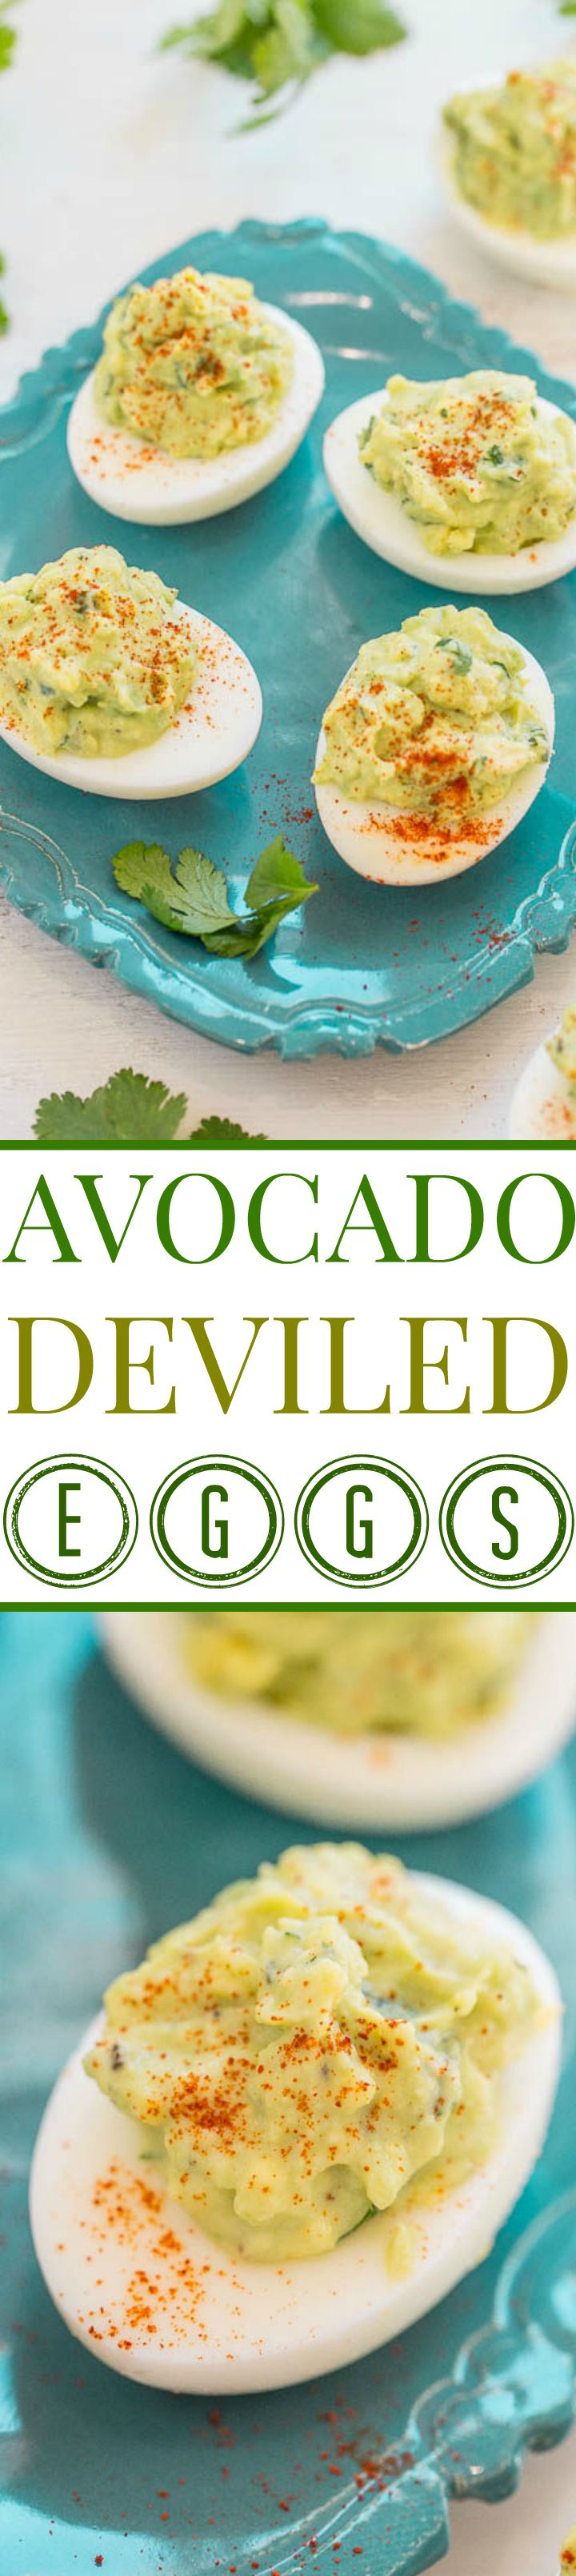 Avocado Deviled Eggs - GUACAMOLE inspired filling jazzes up regular deviled eggs and makes them addictively good!! EASY, tasty, and a perfect little snack or party appetizer!!